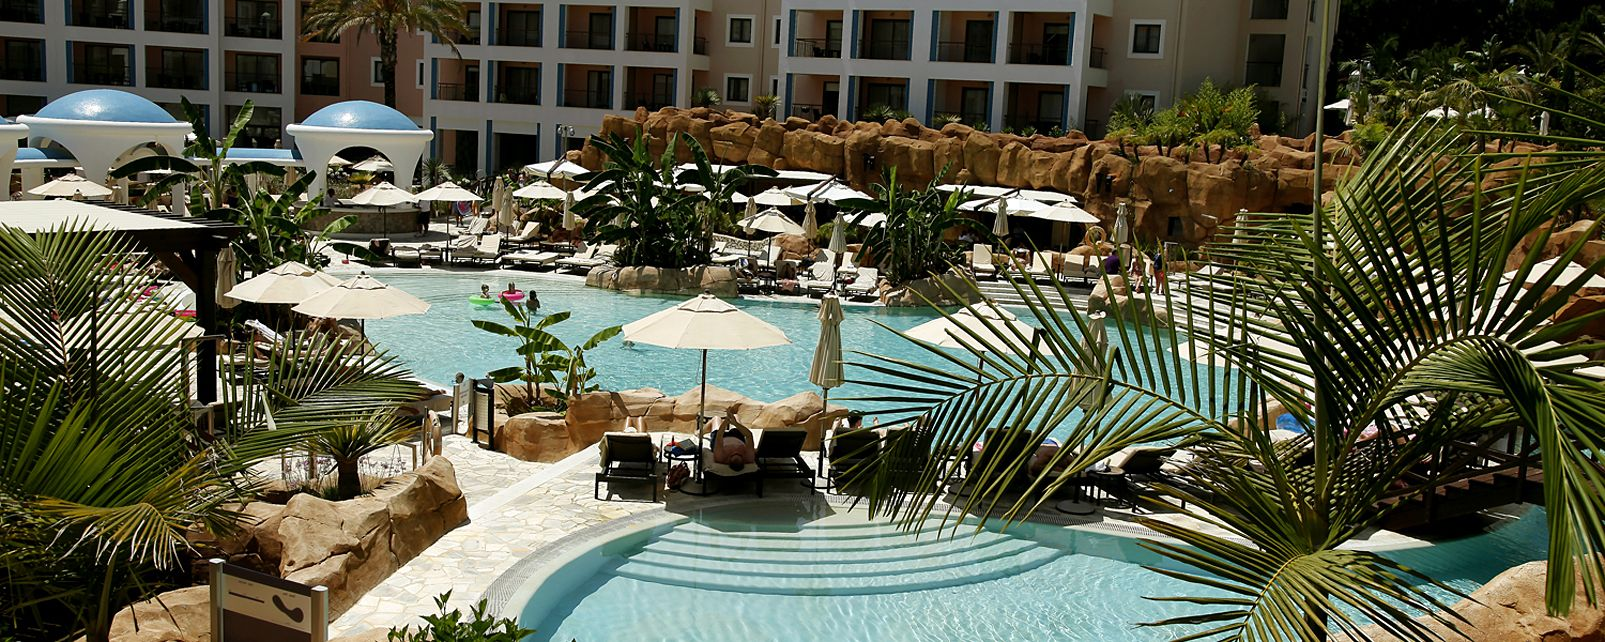 Hotel Hilton Vilamoura As Cascatas Golf Resort and Spa